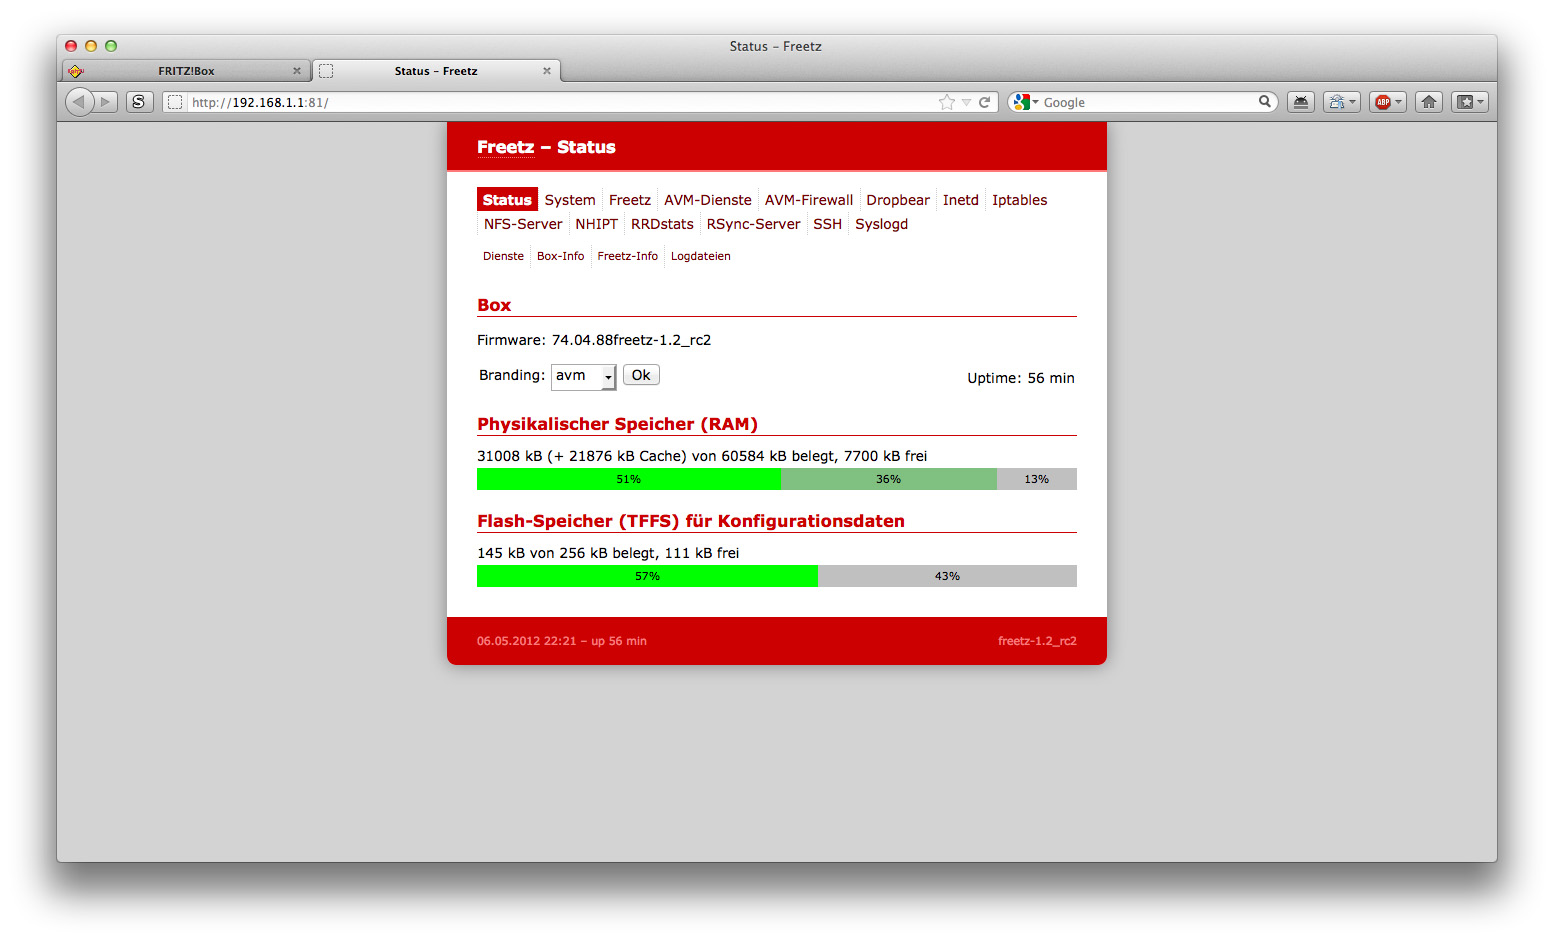 Customize your Fritzbox to allow traffic-shaping | www jzab de